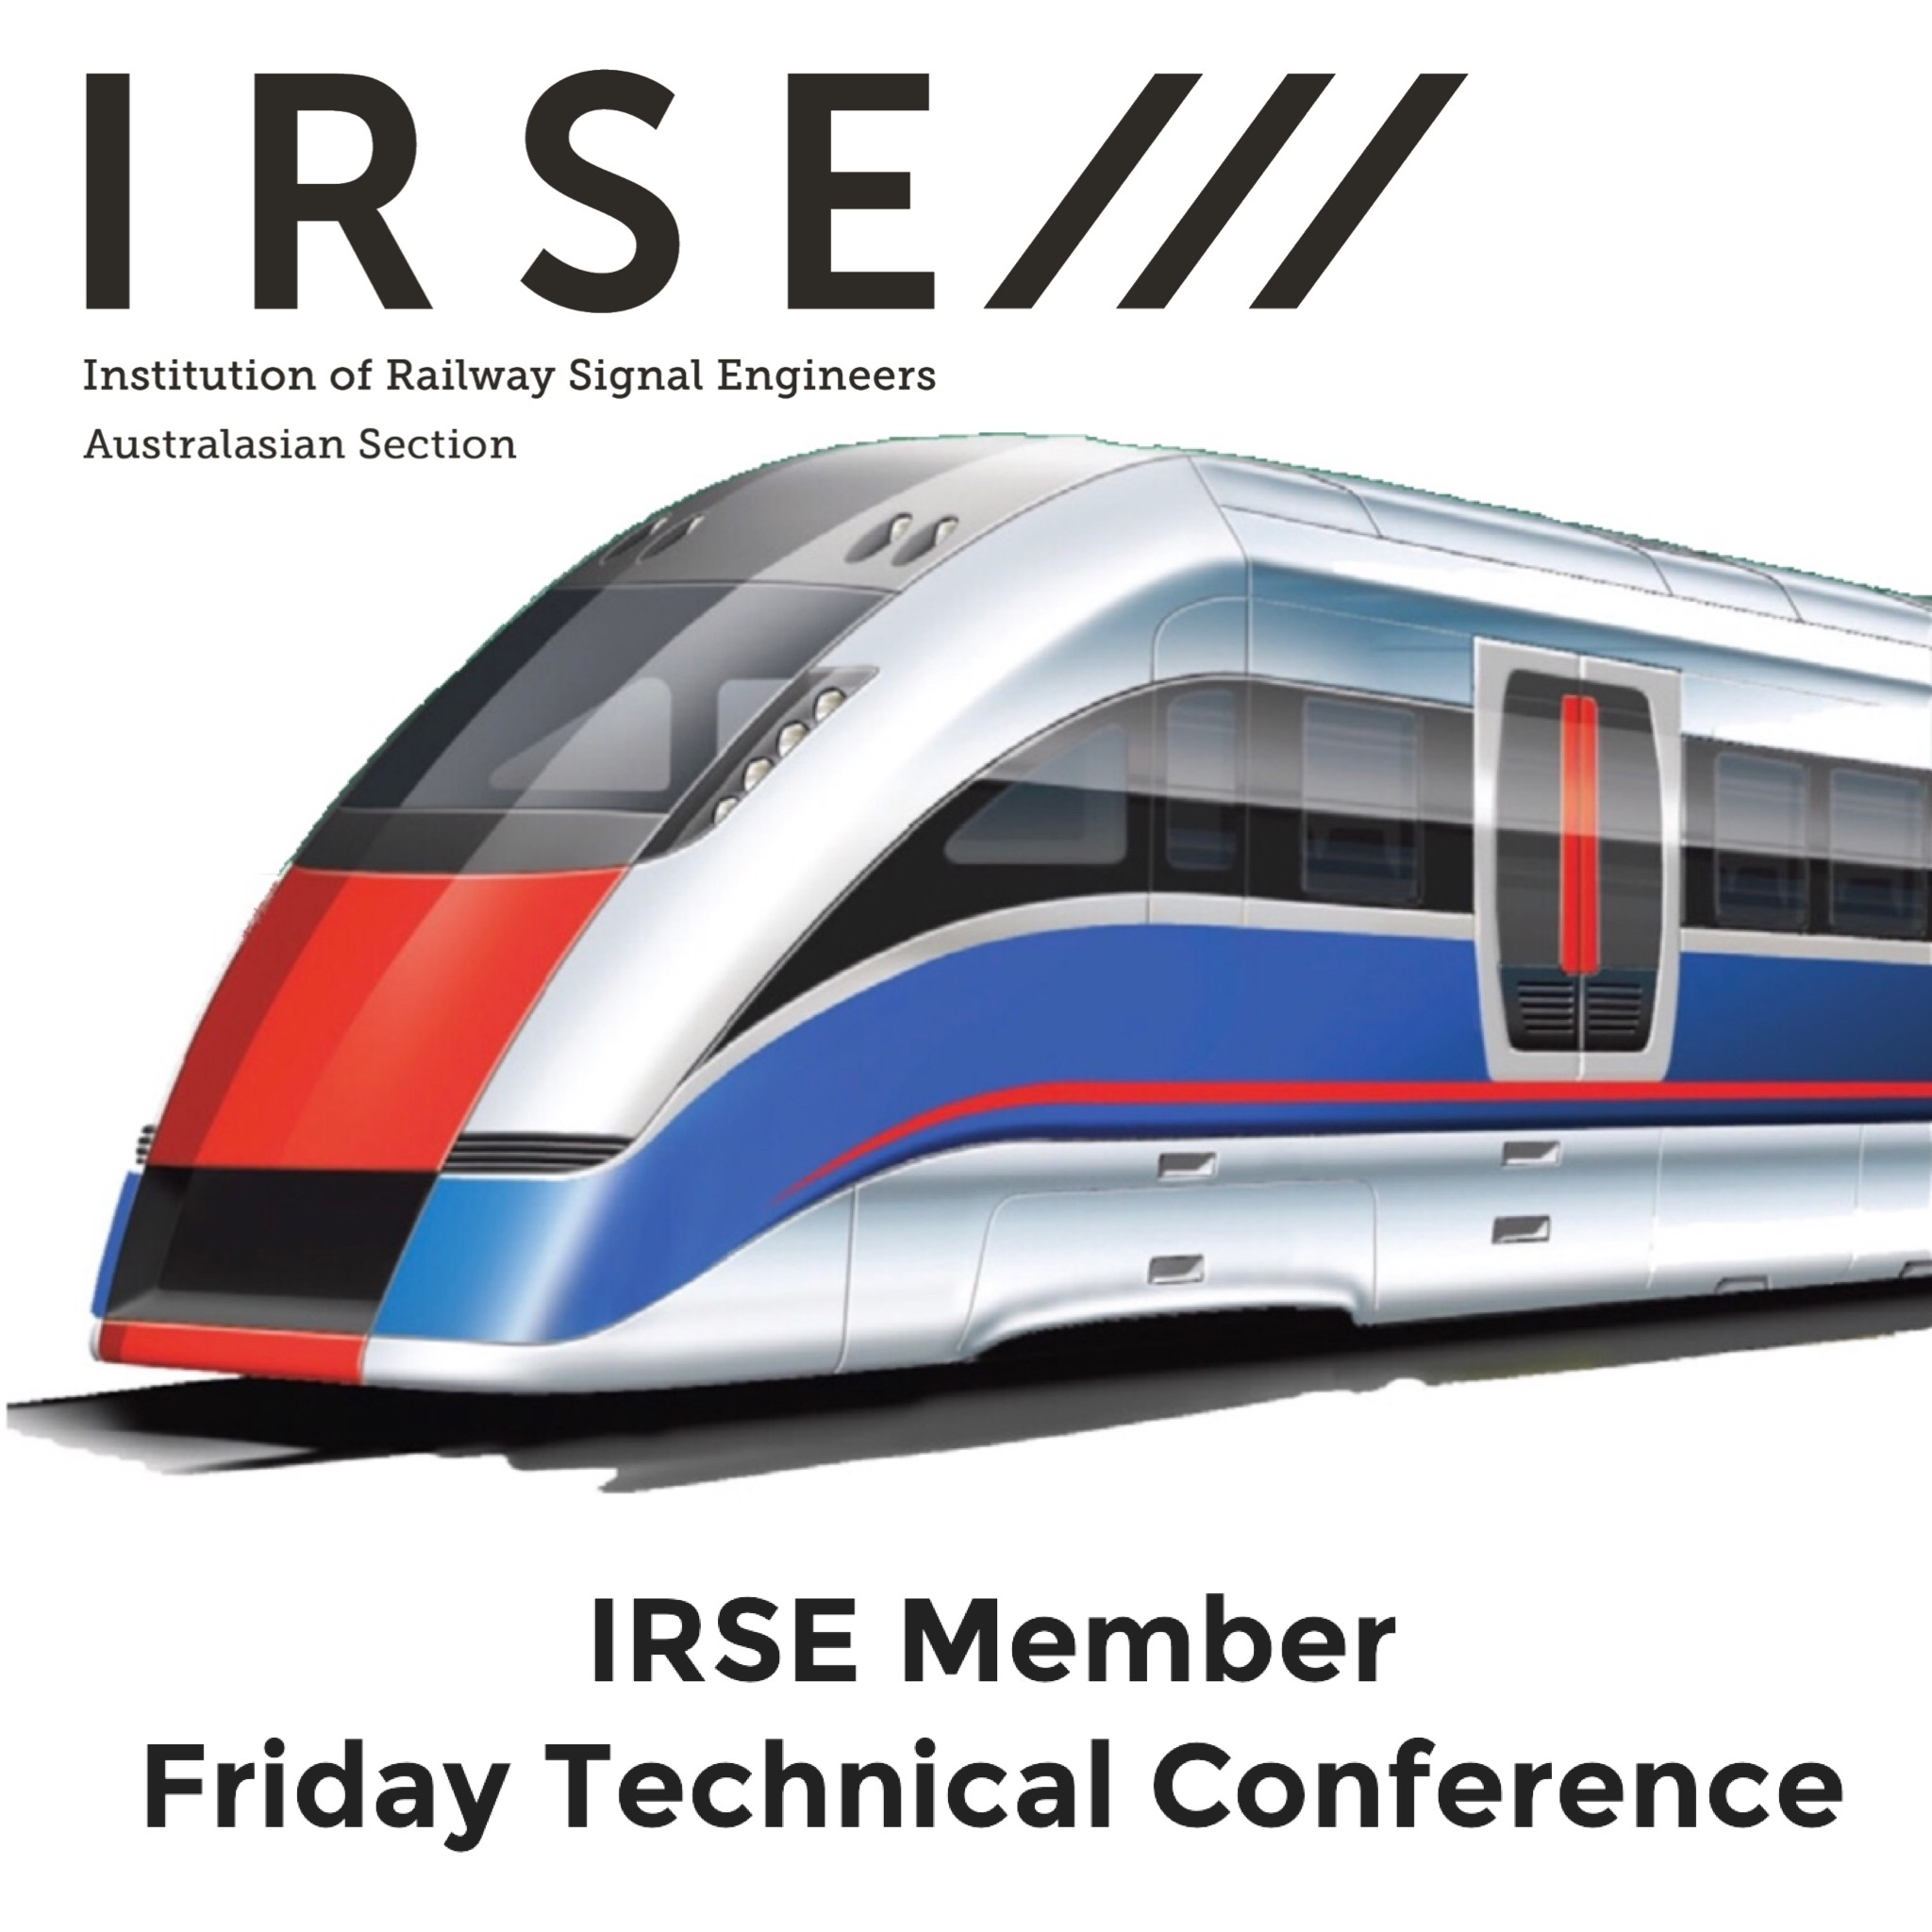 IRSE Australasia Member - Friday Technical Conference only